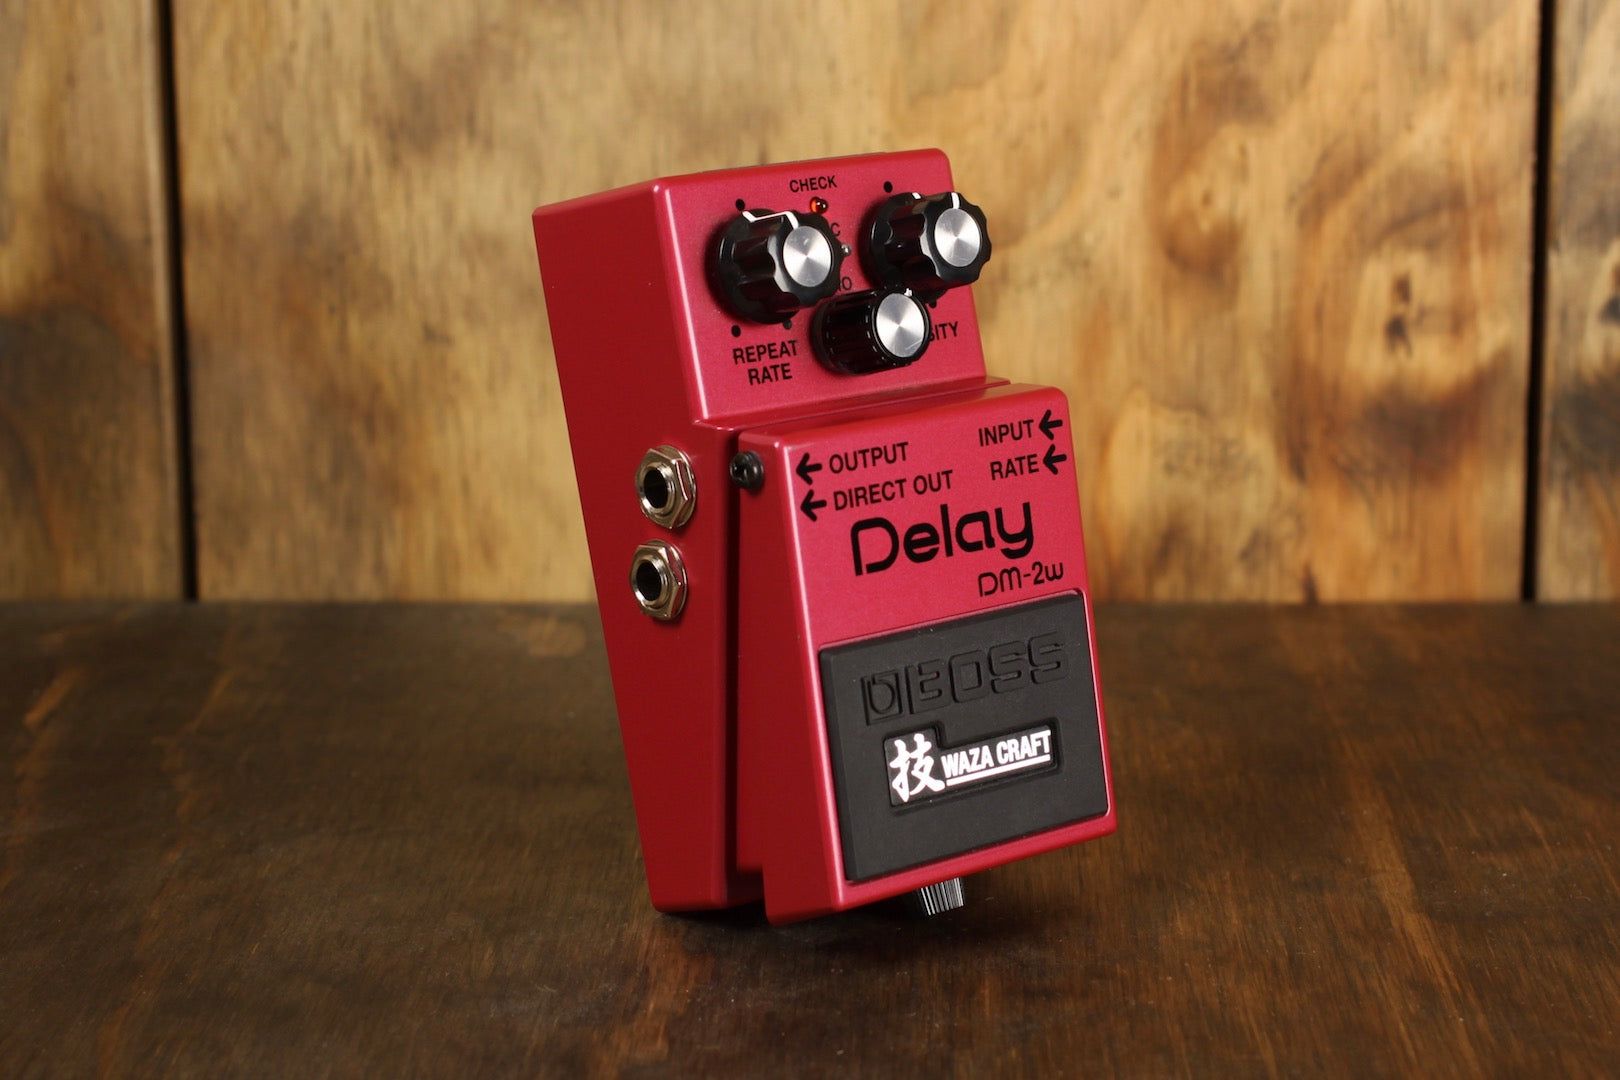 Boss DM-2w Delay Waza Craft